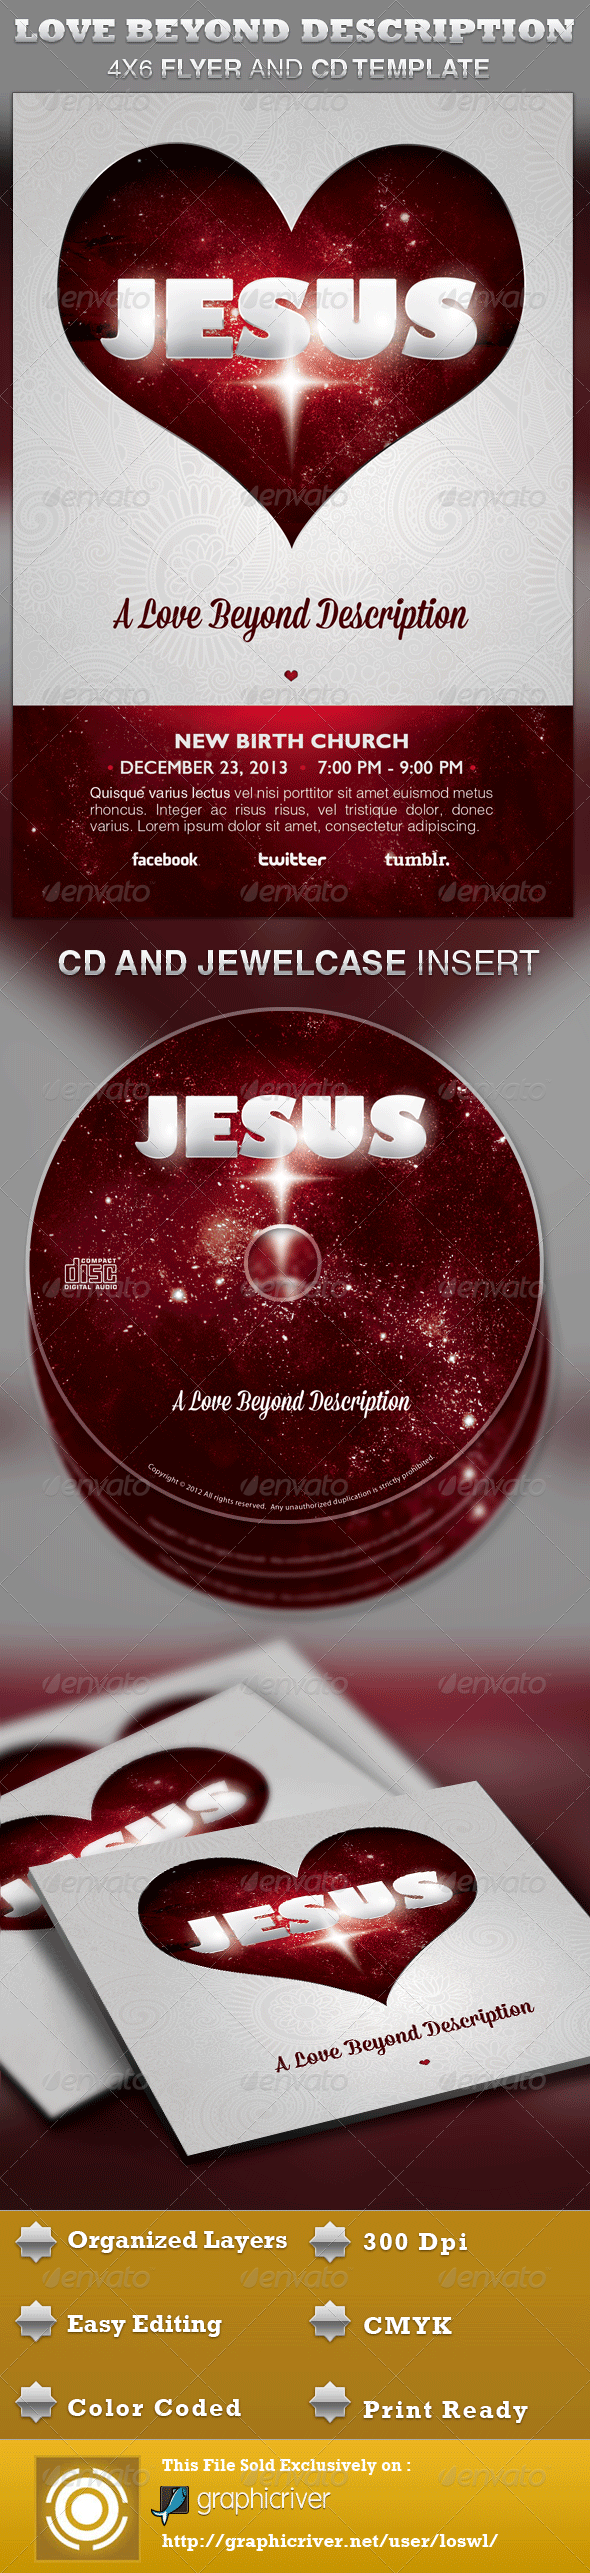 A Love Beyond Description Church Flyer and CD - Church Flyers